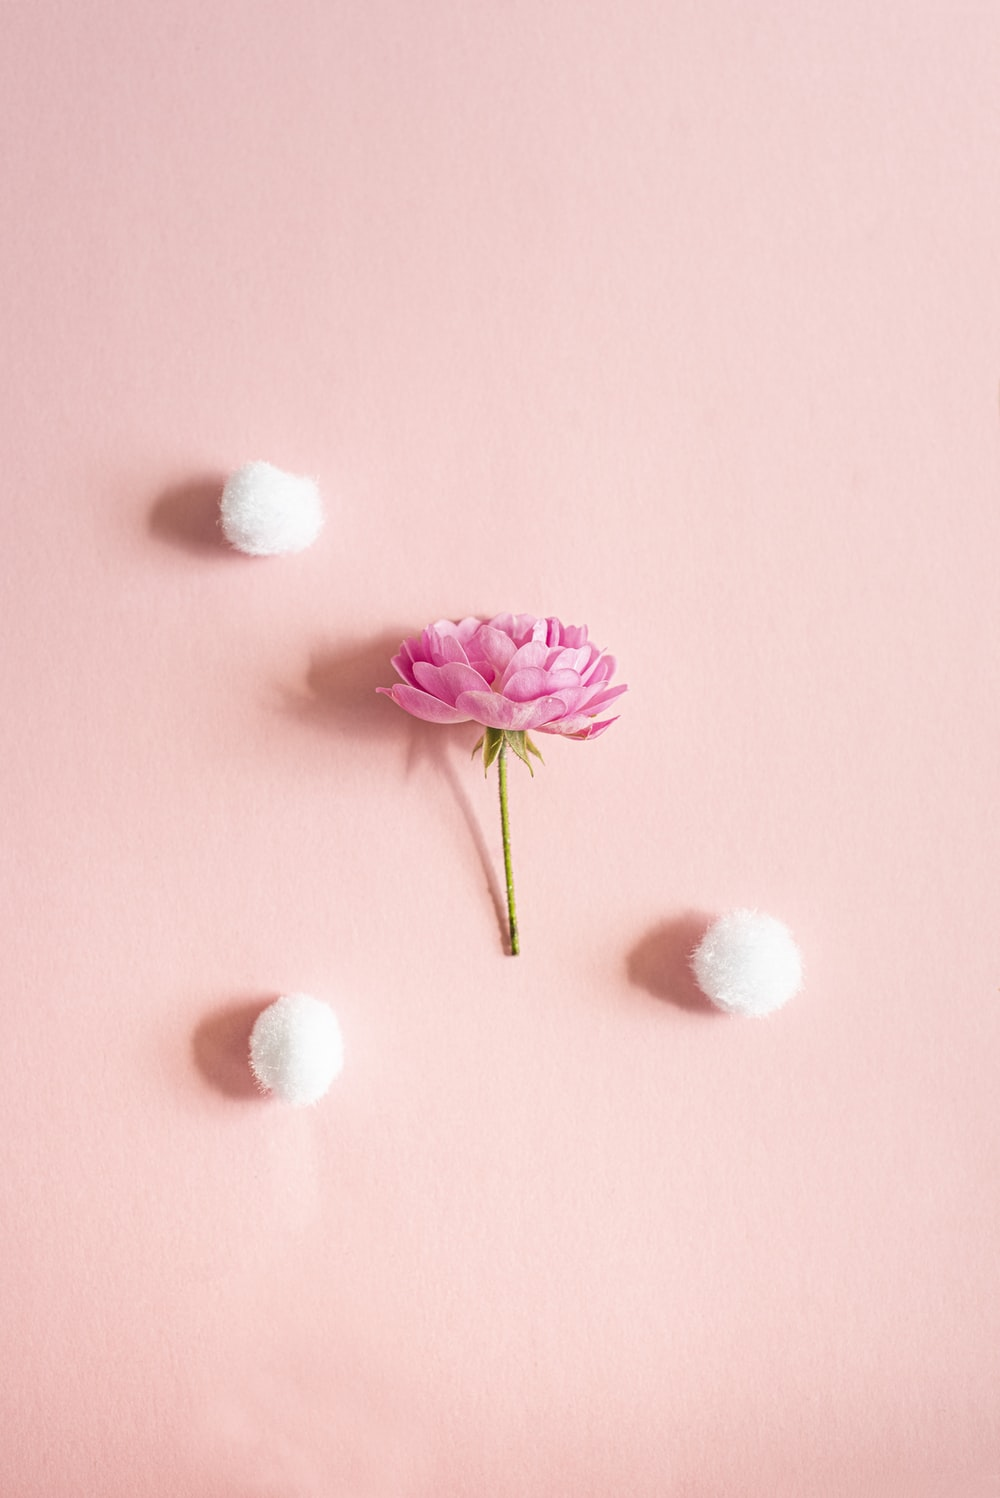 pink and white flower on pink surface